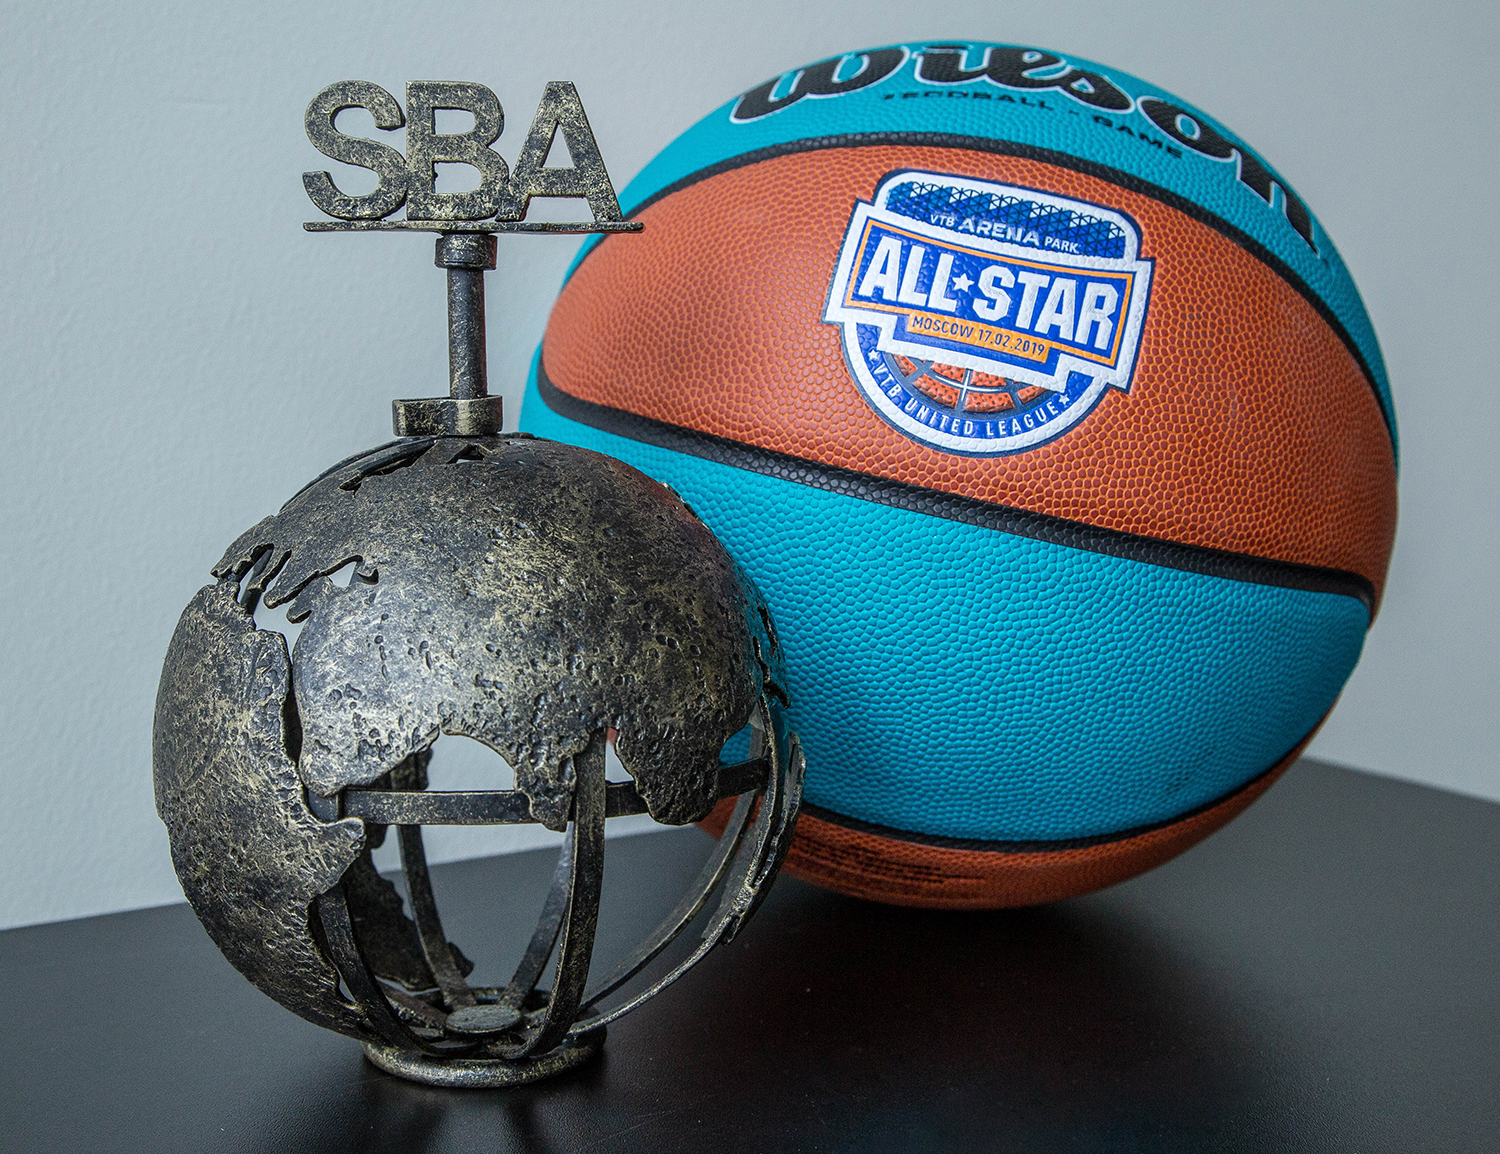 All-Star Game Named Sports Event Of The Year By Sport Business Consulting